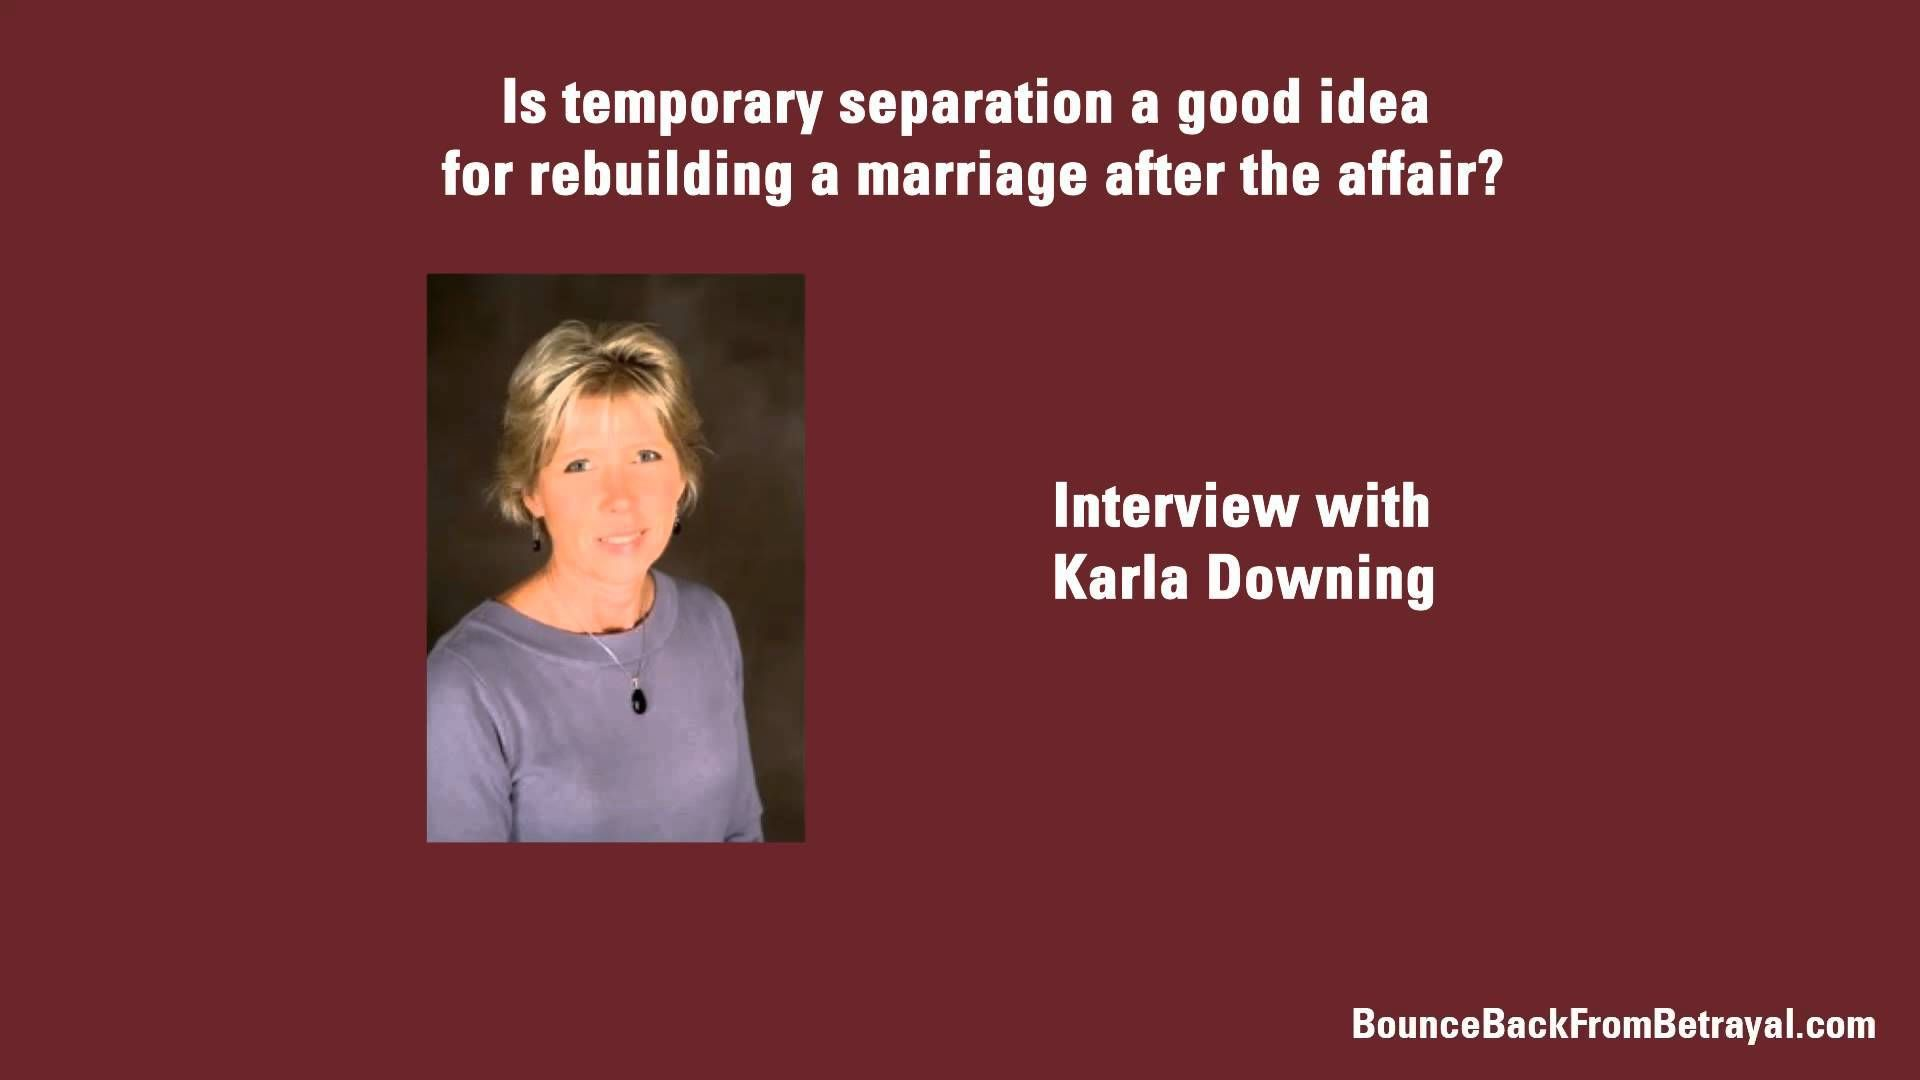 When separation is good for marriage